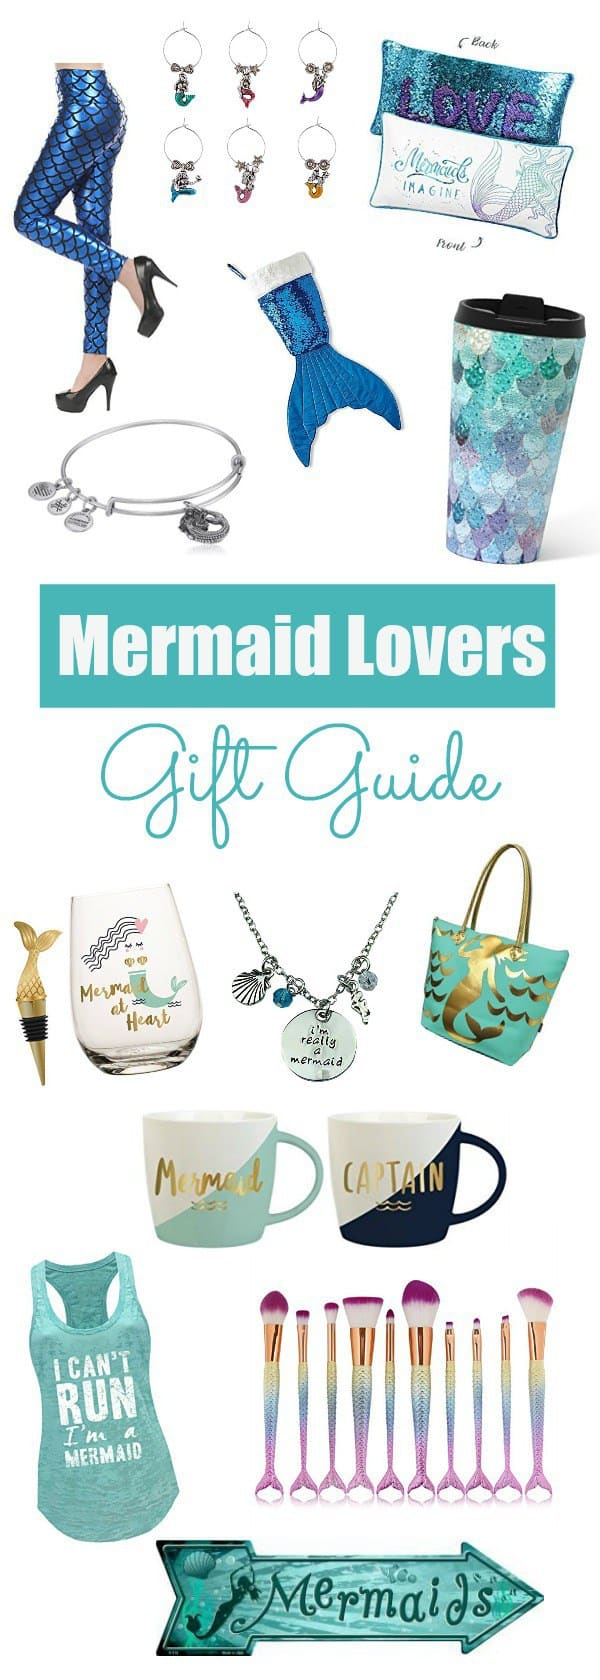 check out my girl lesleys awesome mermaid lovers gift guide hubby can have all the sports stuff as long as i get something mermaid for christmas